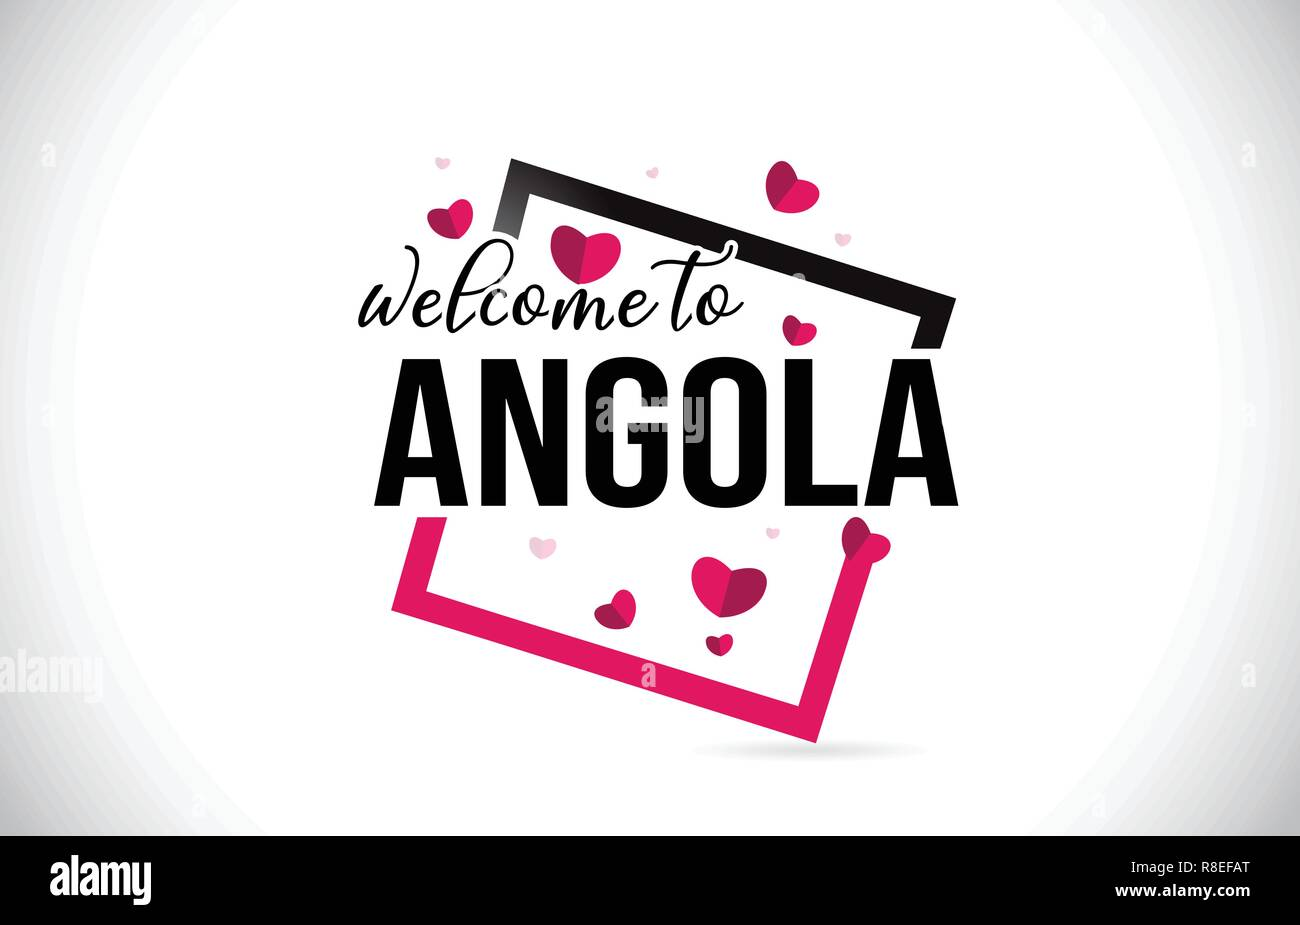 Angola Welcome To Word Text with Handwritten Font and  Red Hearts Square Design Illustration Vector. - Stock Vector